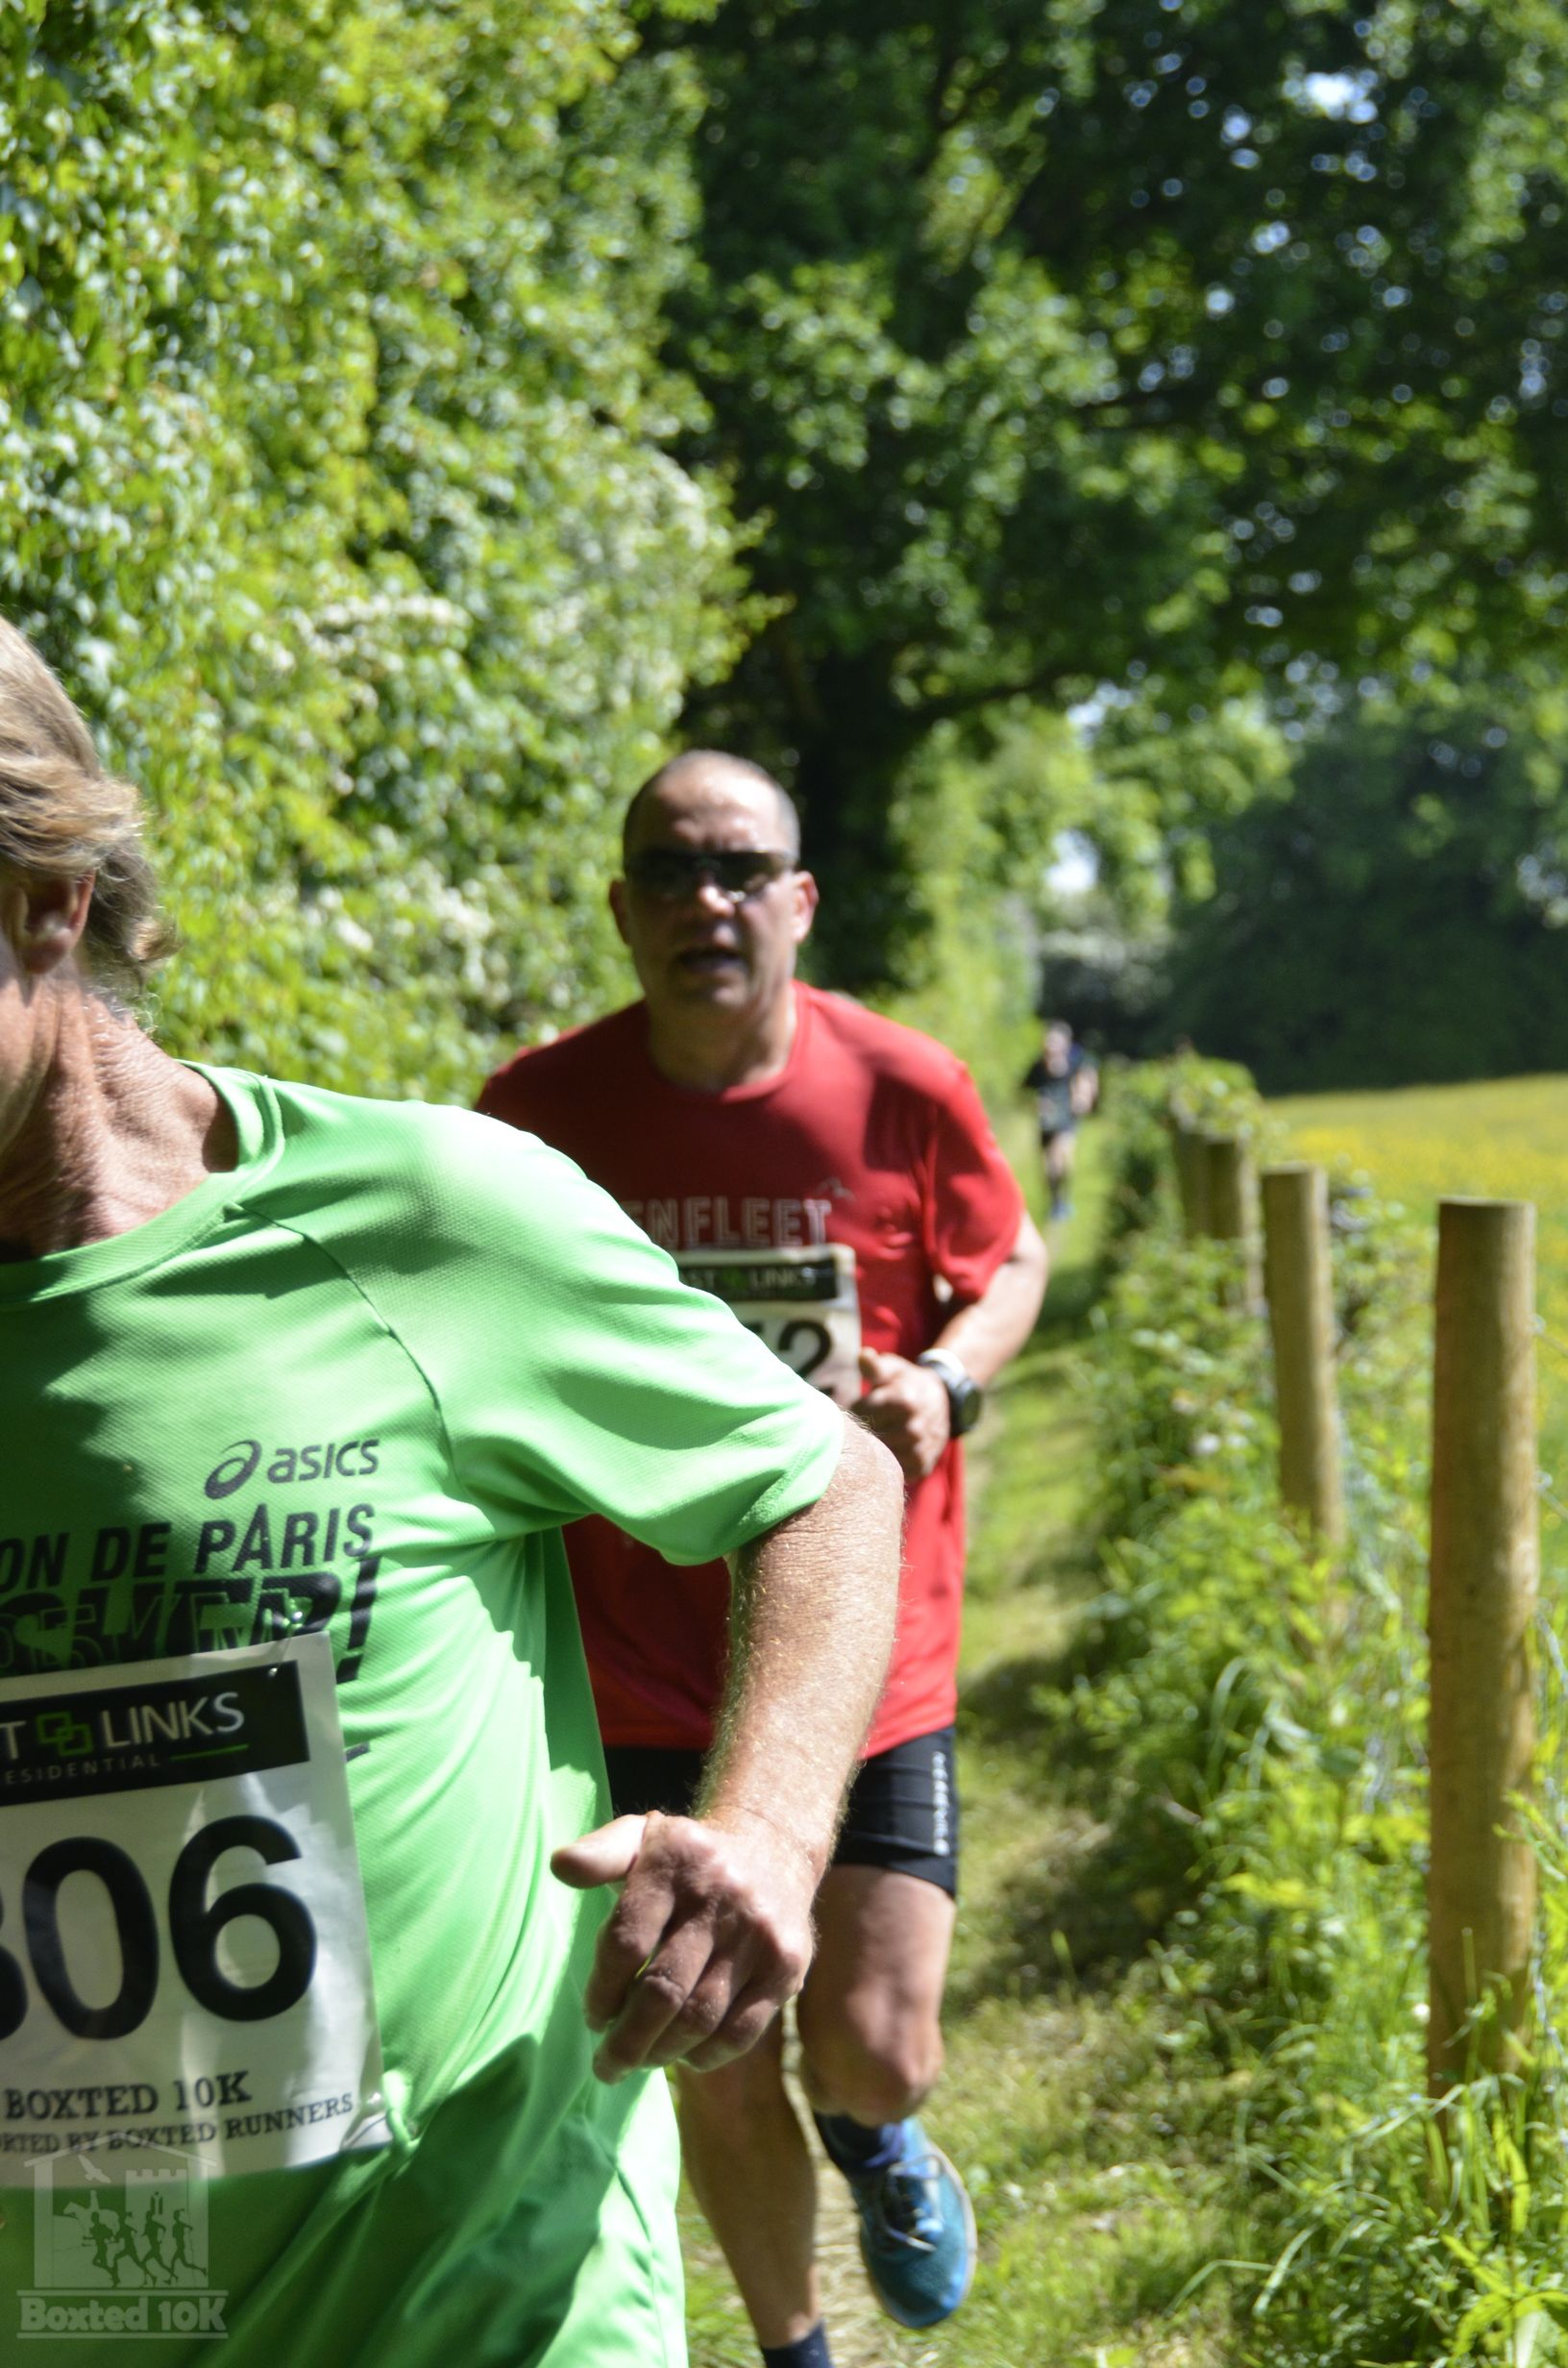 Boxted10k-00177